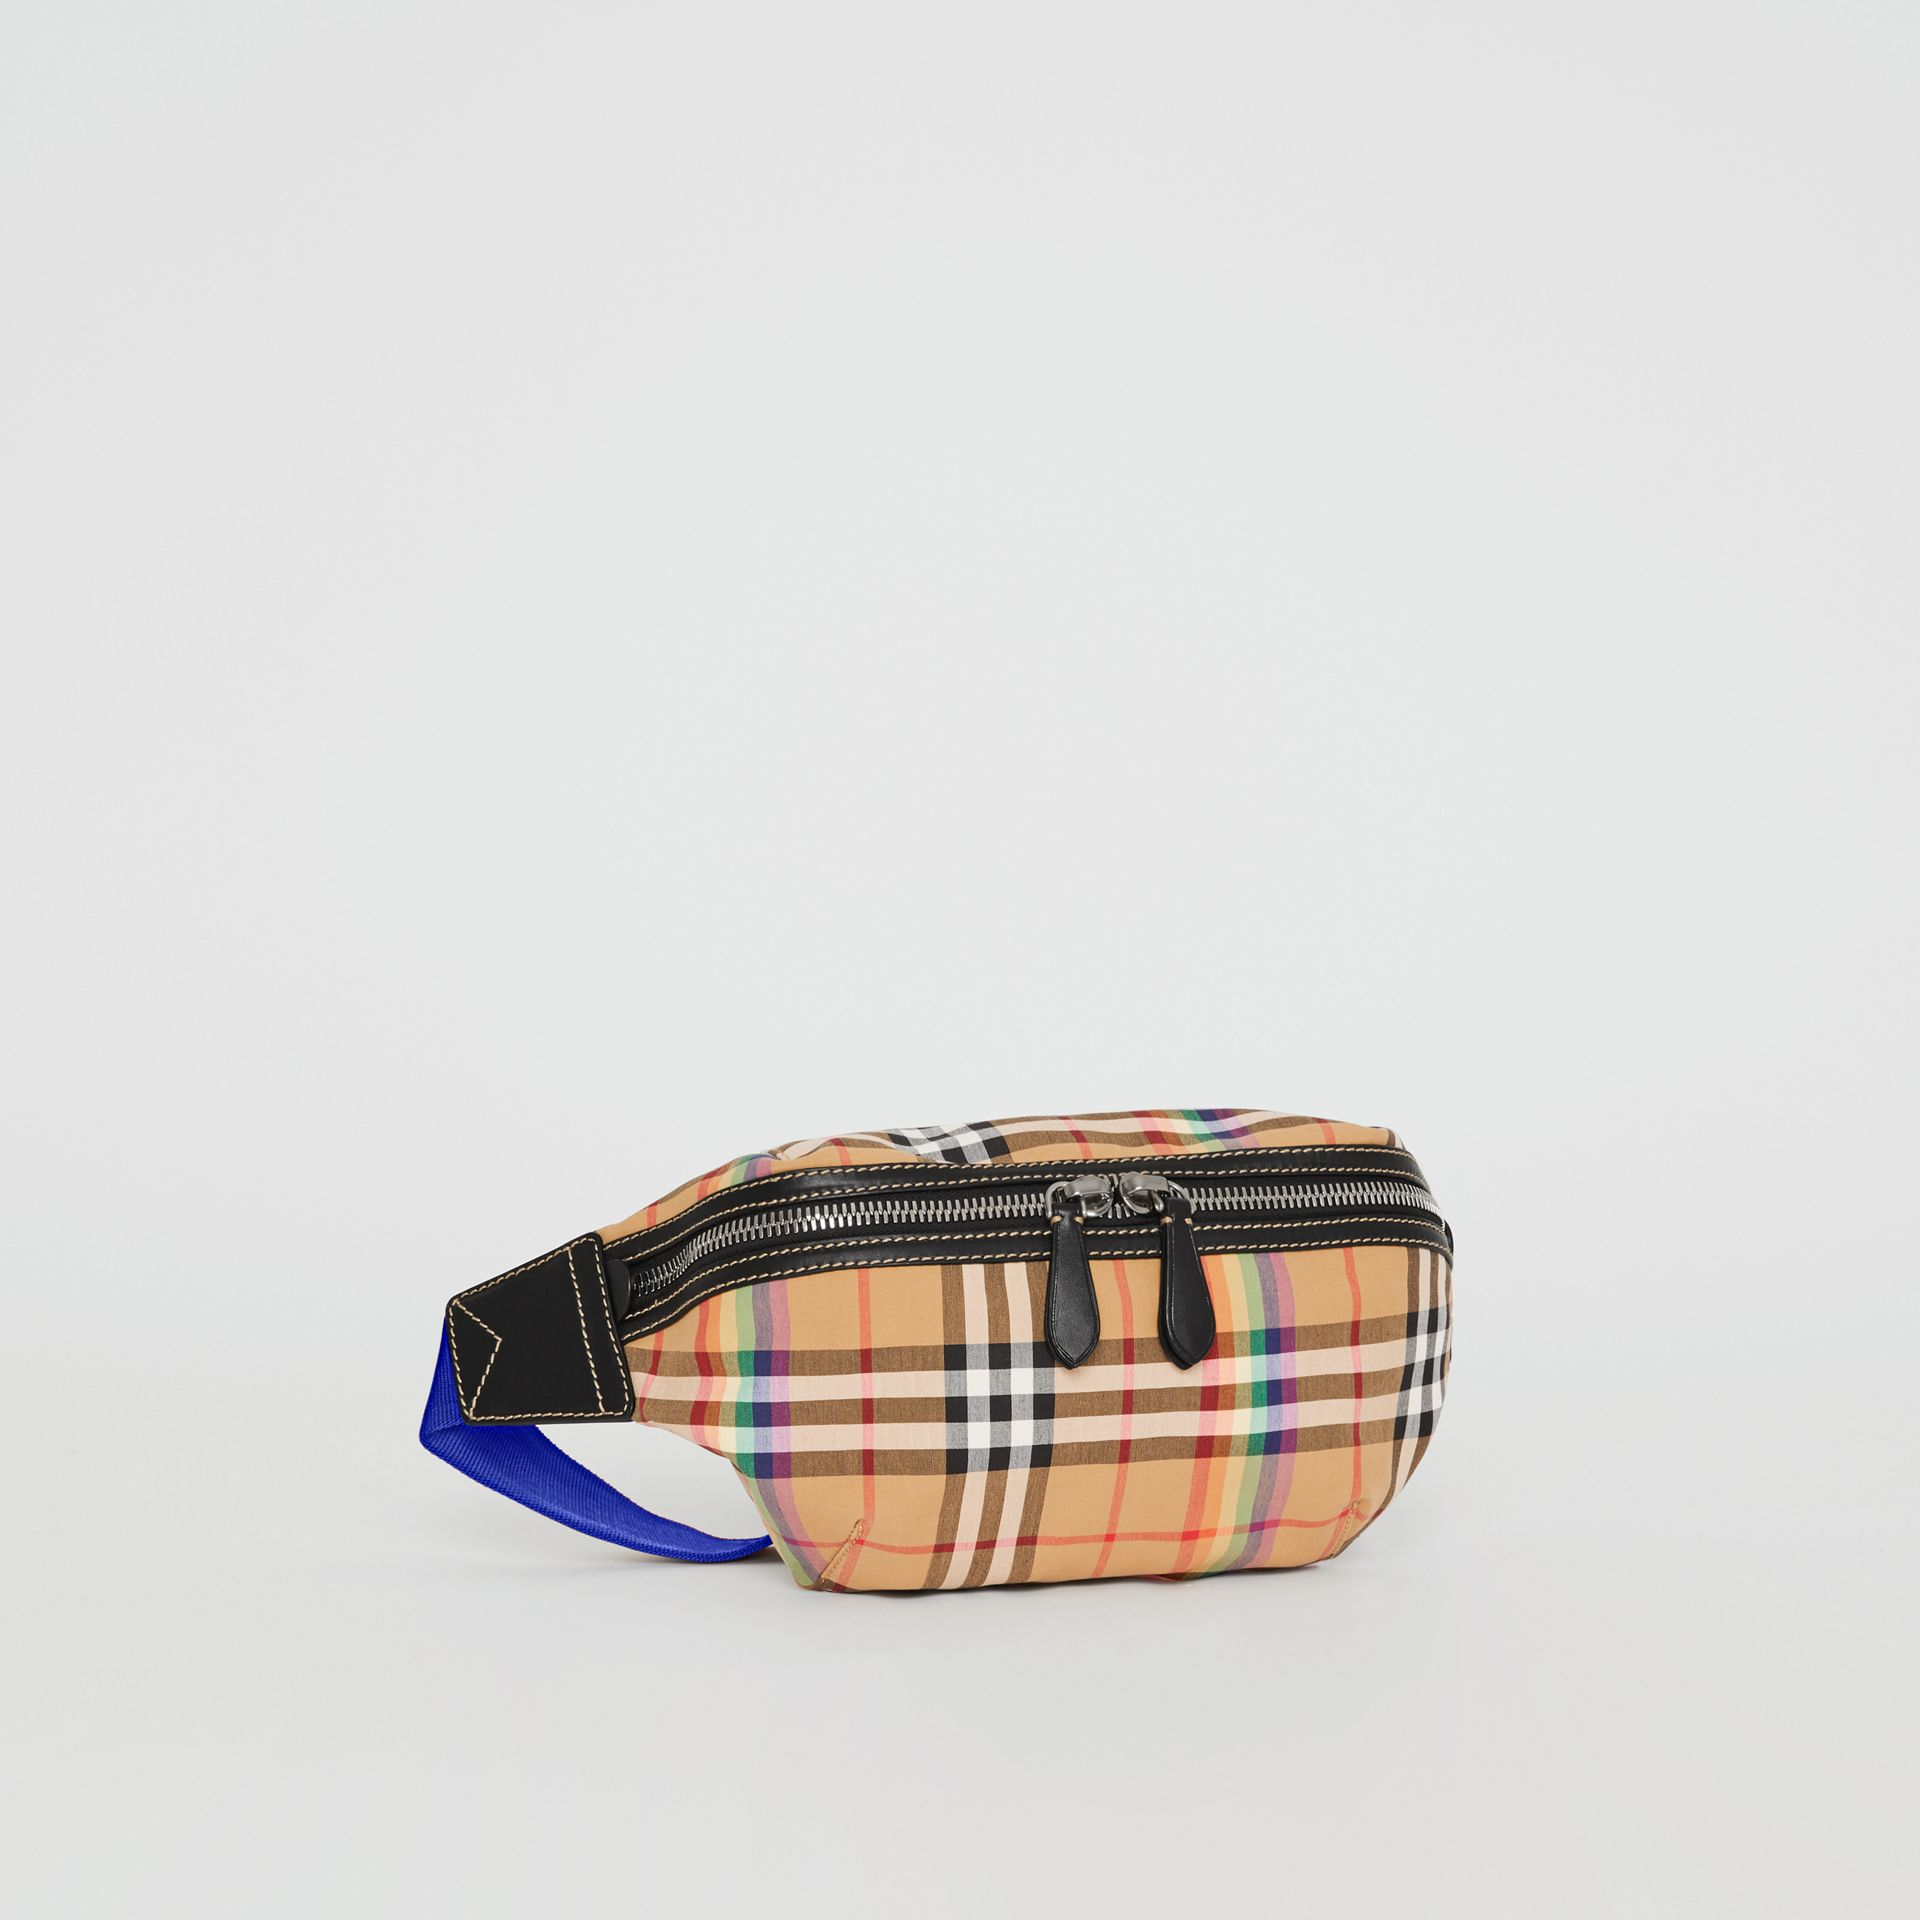 Medium Rainbow Vintage Check Bum Bag in Antique Yellow | Burberry United Kingdom - gallery image 7